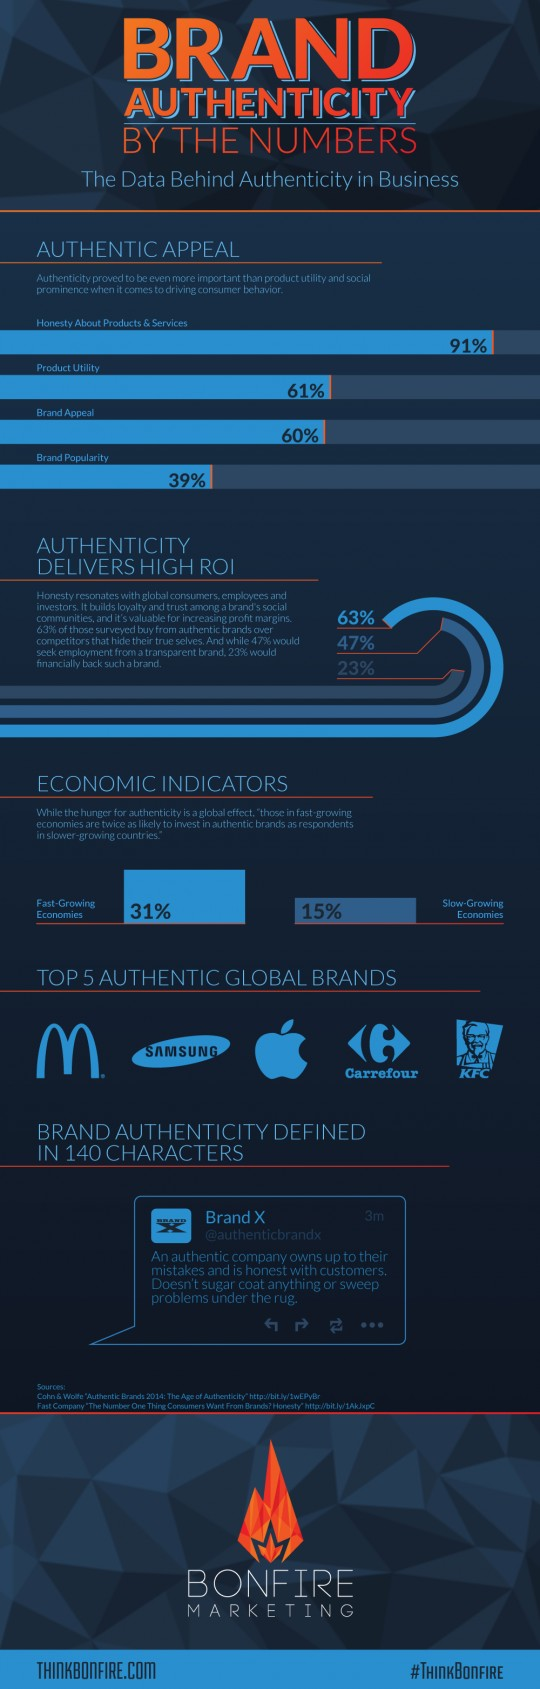 Brand authenticity by the numbers